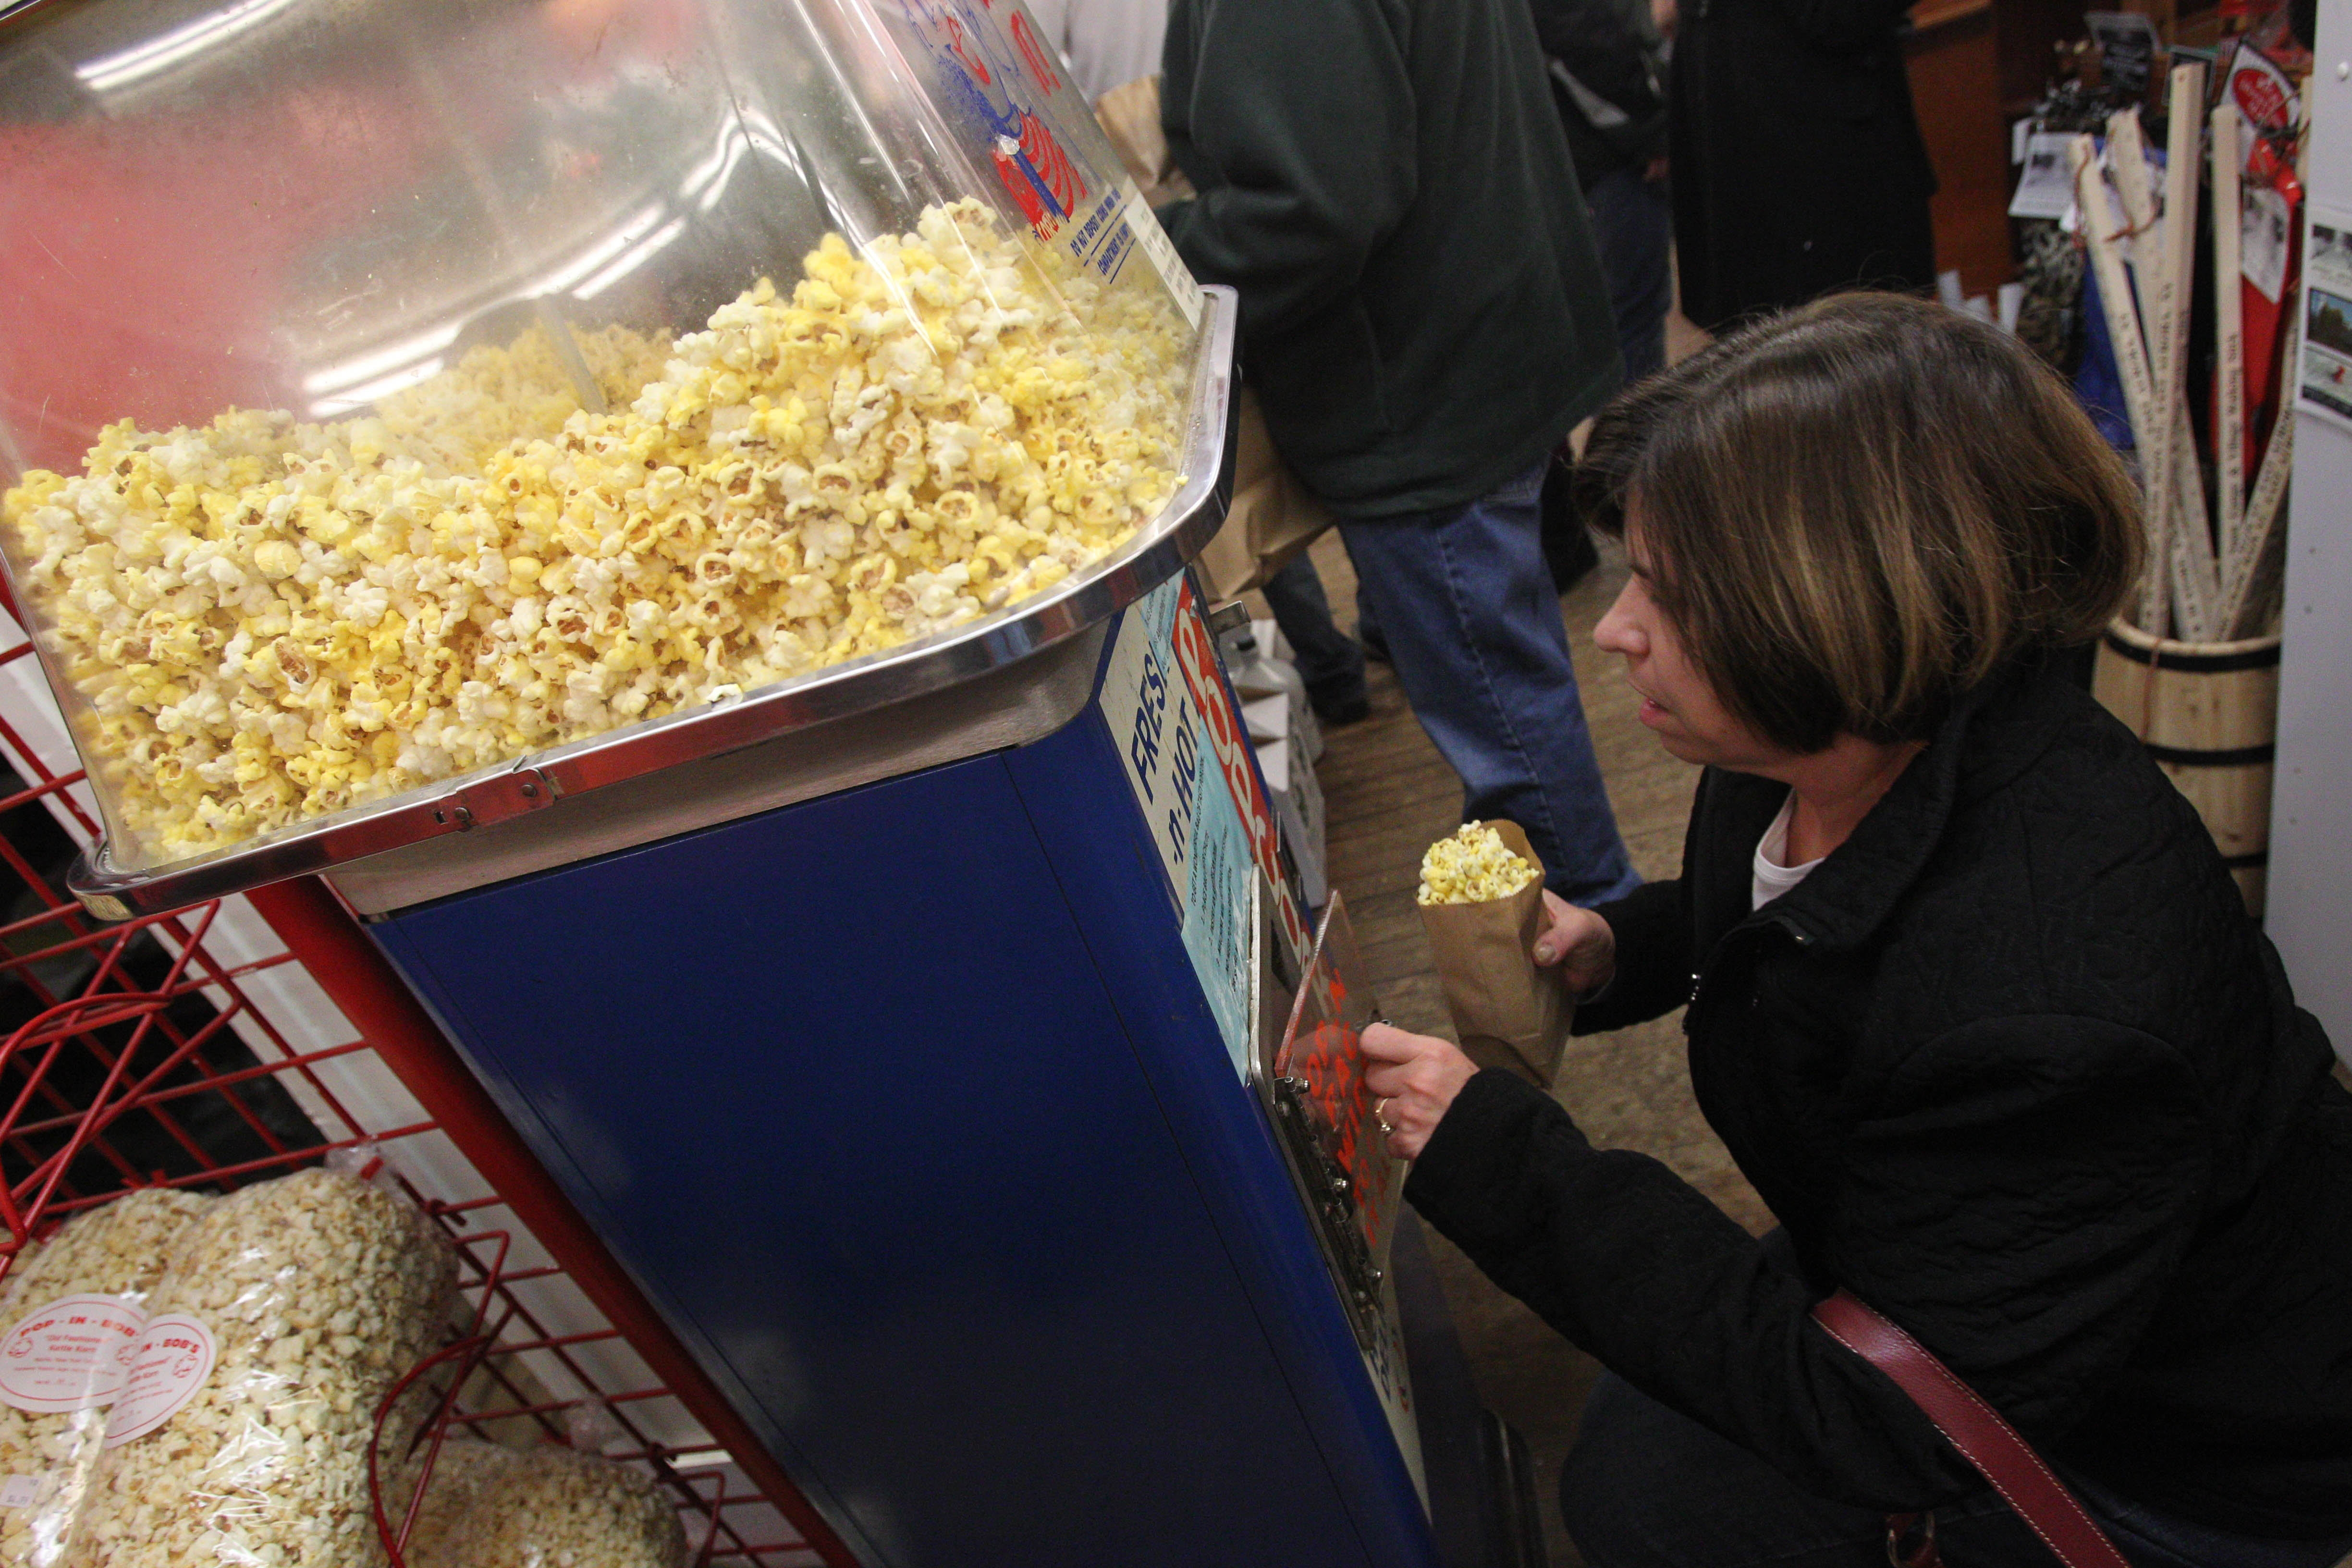 The popcorn machine at Vidler's, shown here in 2012, is up and popping again. (Photo by Sharon Cantillon / Buffalo News)